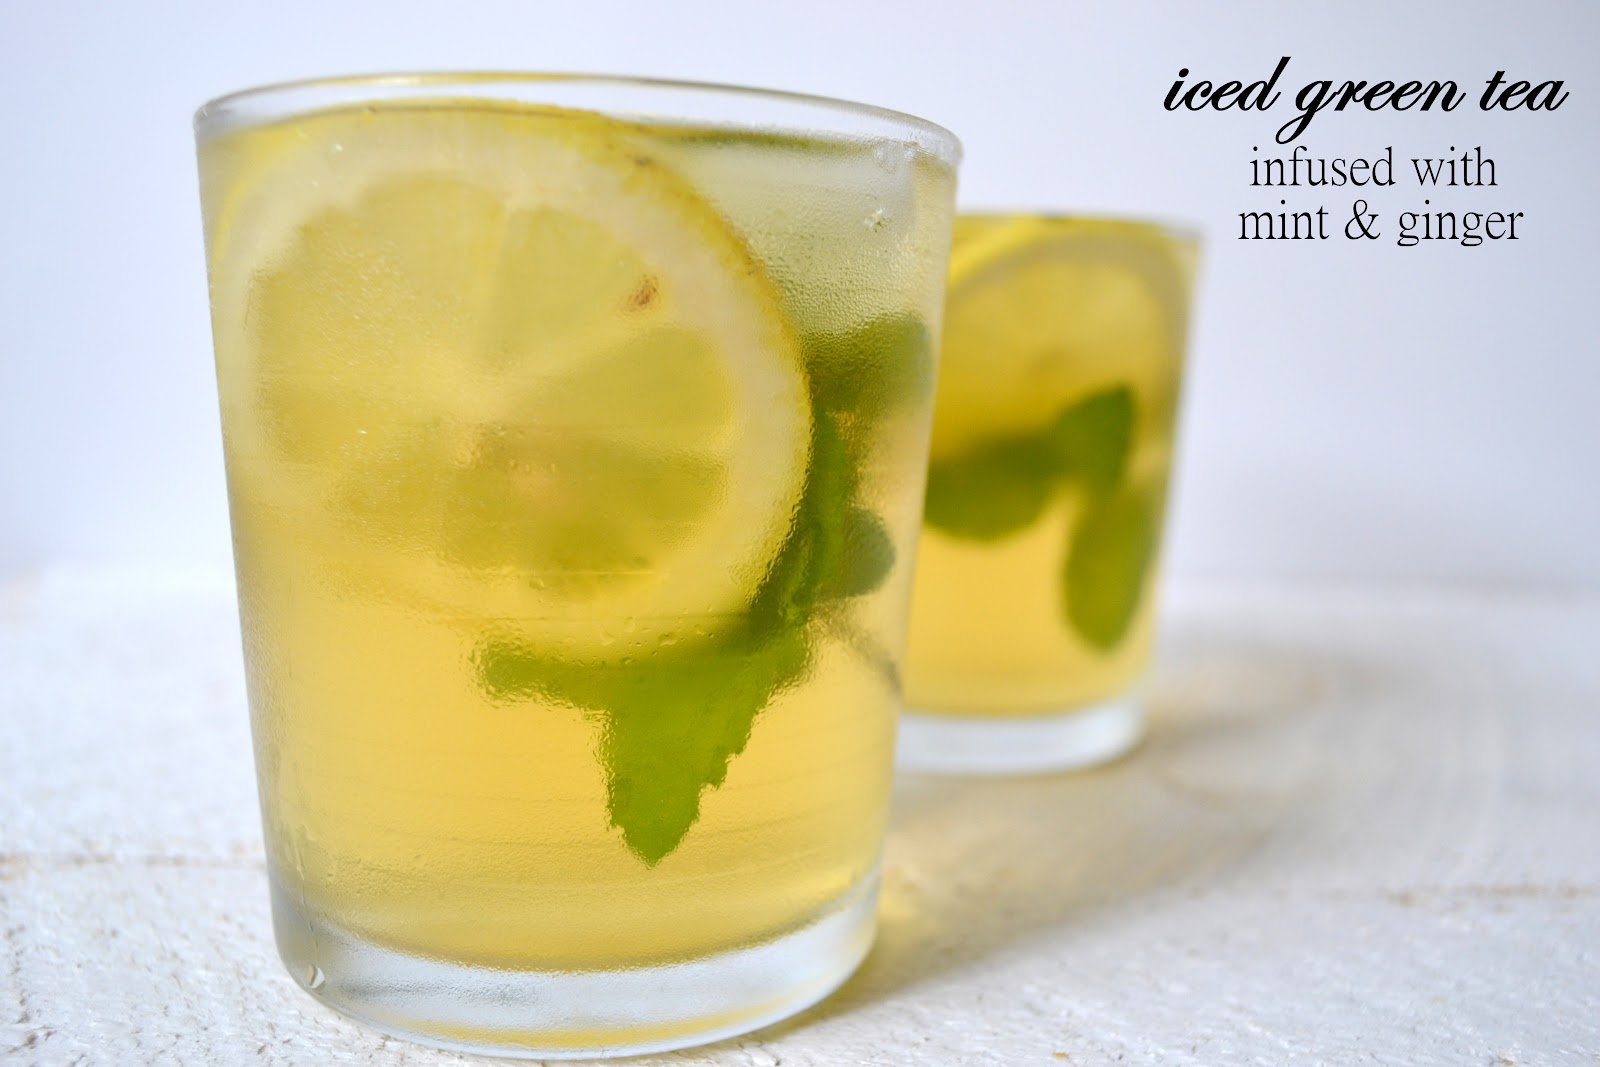 Infused green tea